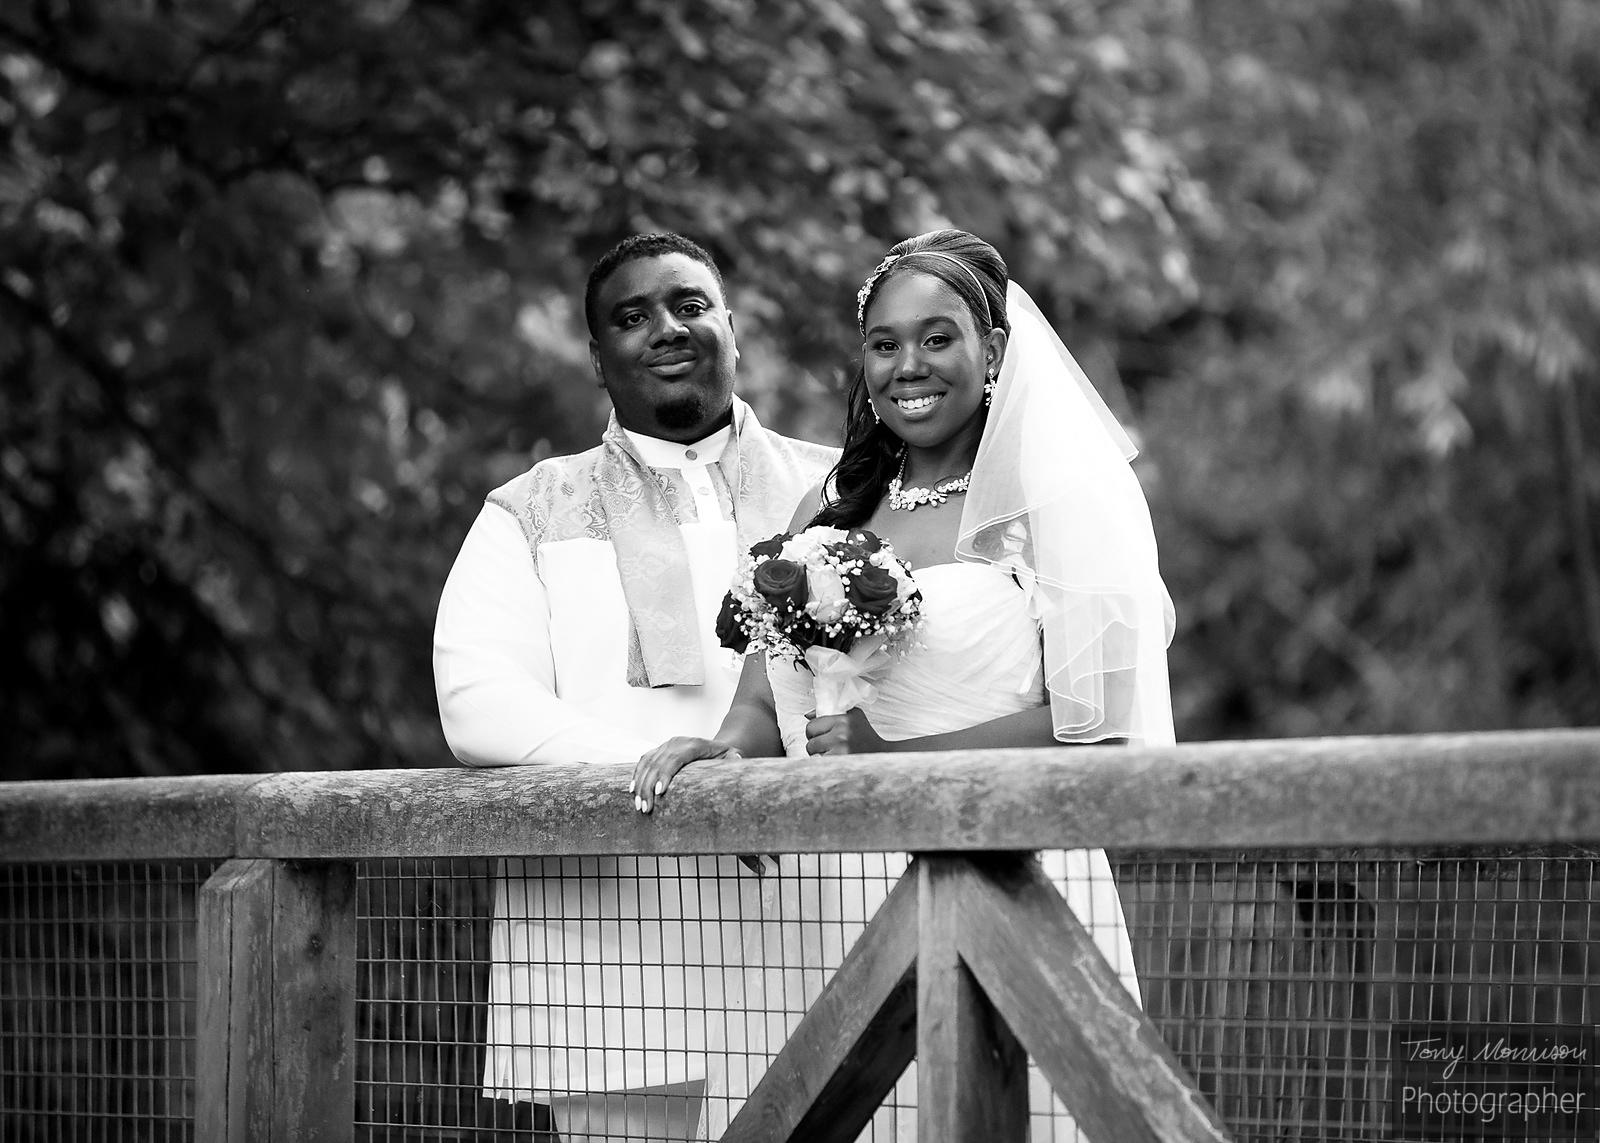 Preview from Taneeka and Ashley's #BigDay #Weddingphotography  #weddingphoto #weddingday #Weddingphotographer #weddingmoments...